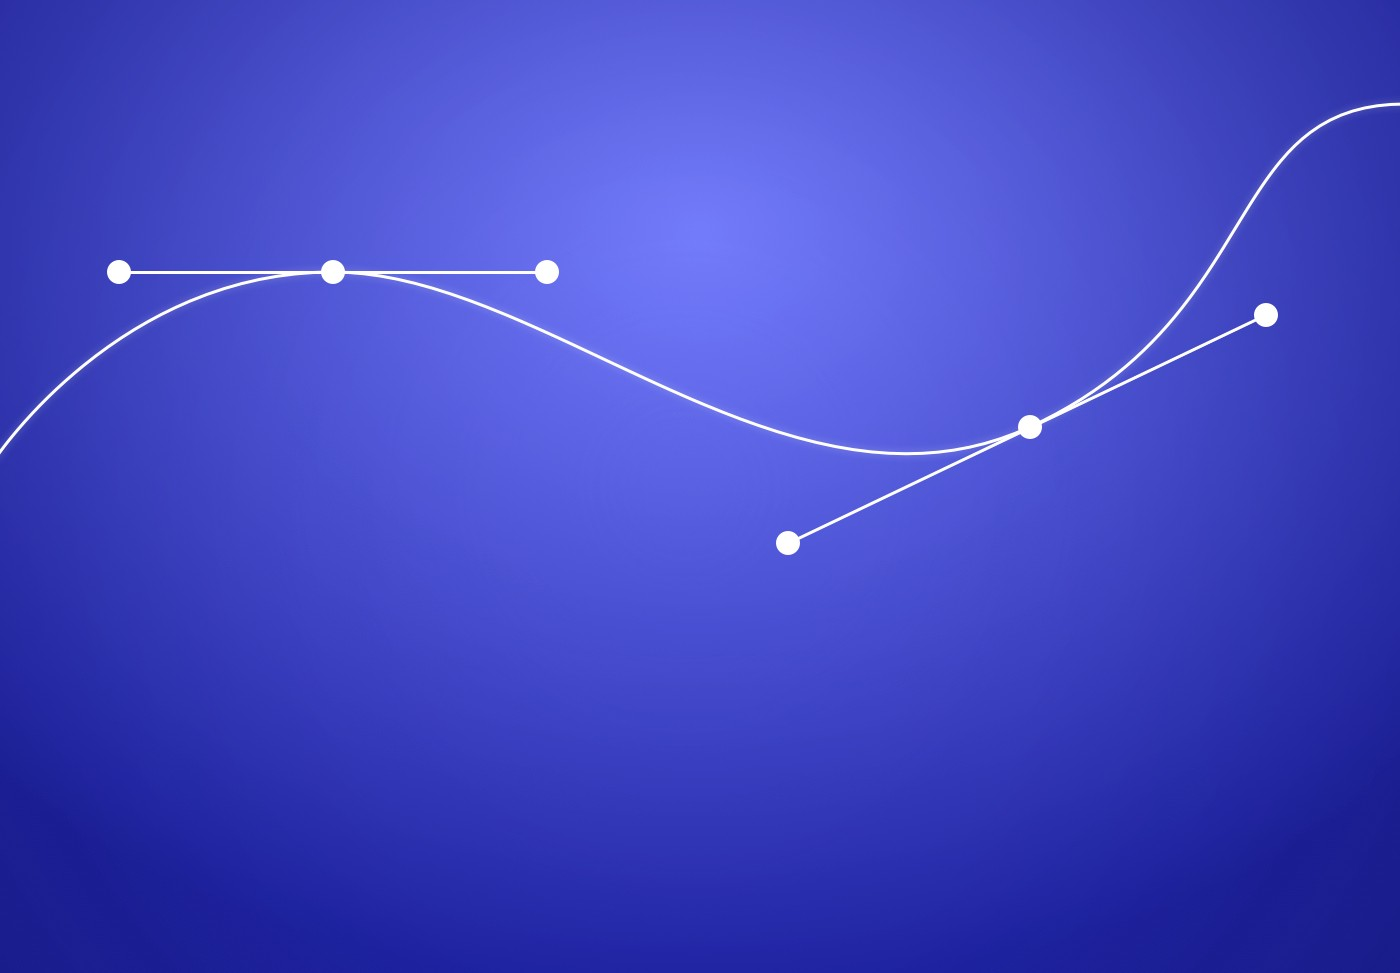 Drawing Smooth Curved Lines In Photo : Mastering the bezier curve in sketch u app medium